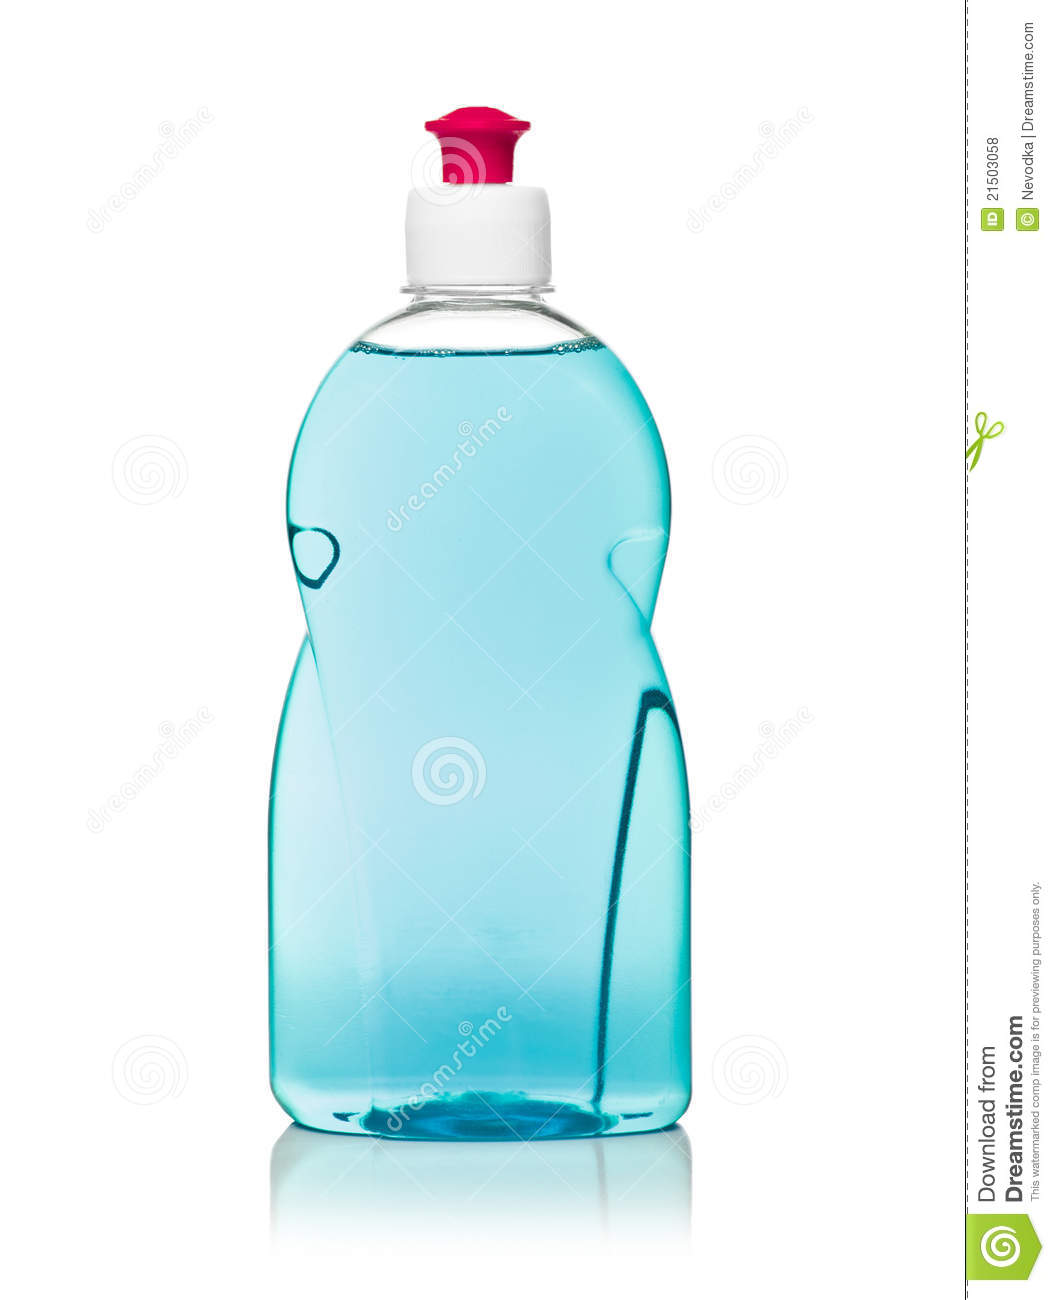 Dishwashing Liquid Royalty Free Stock Photos.